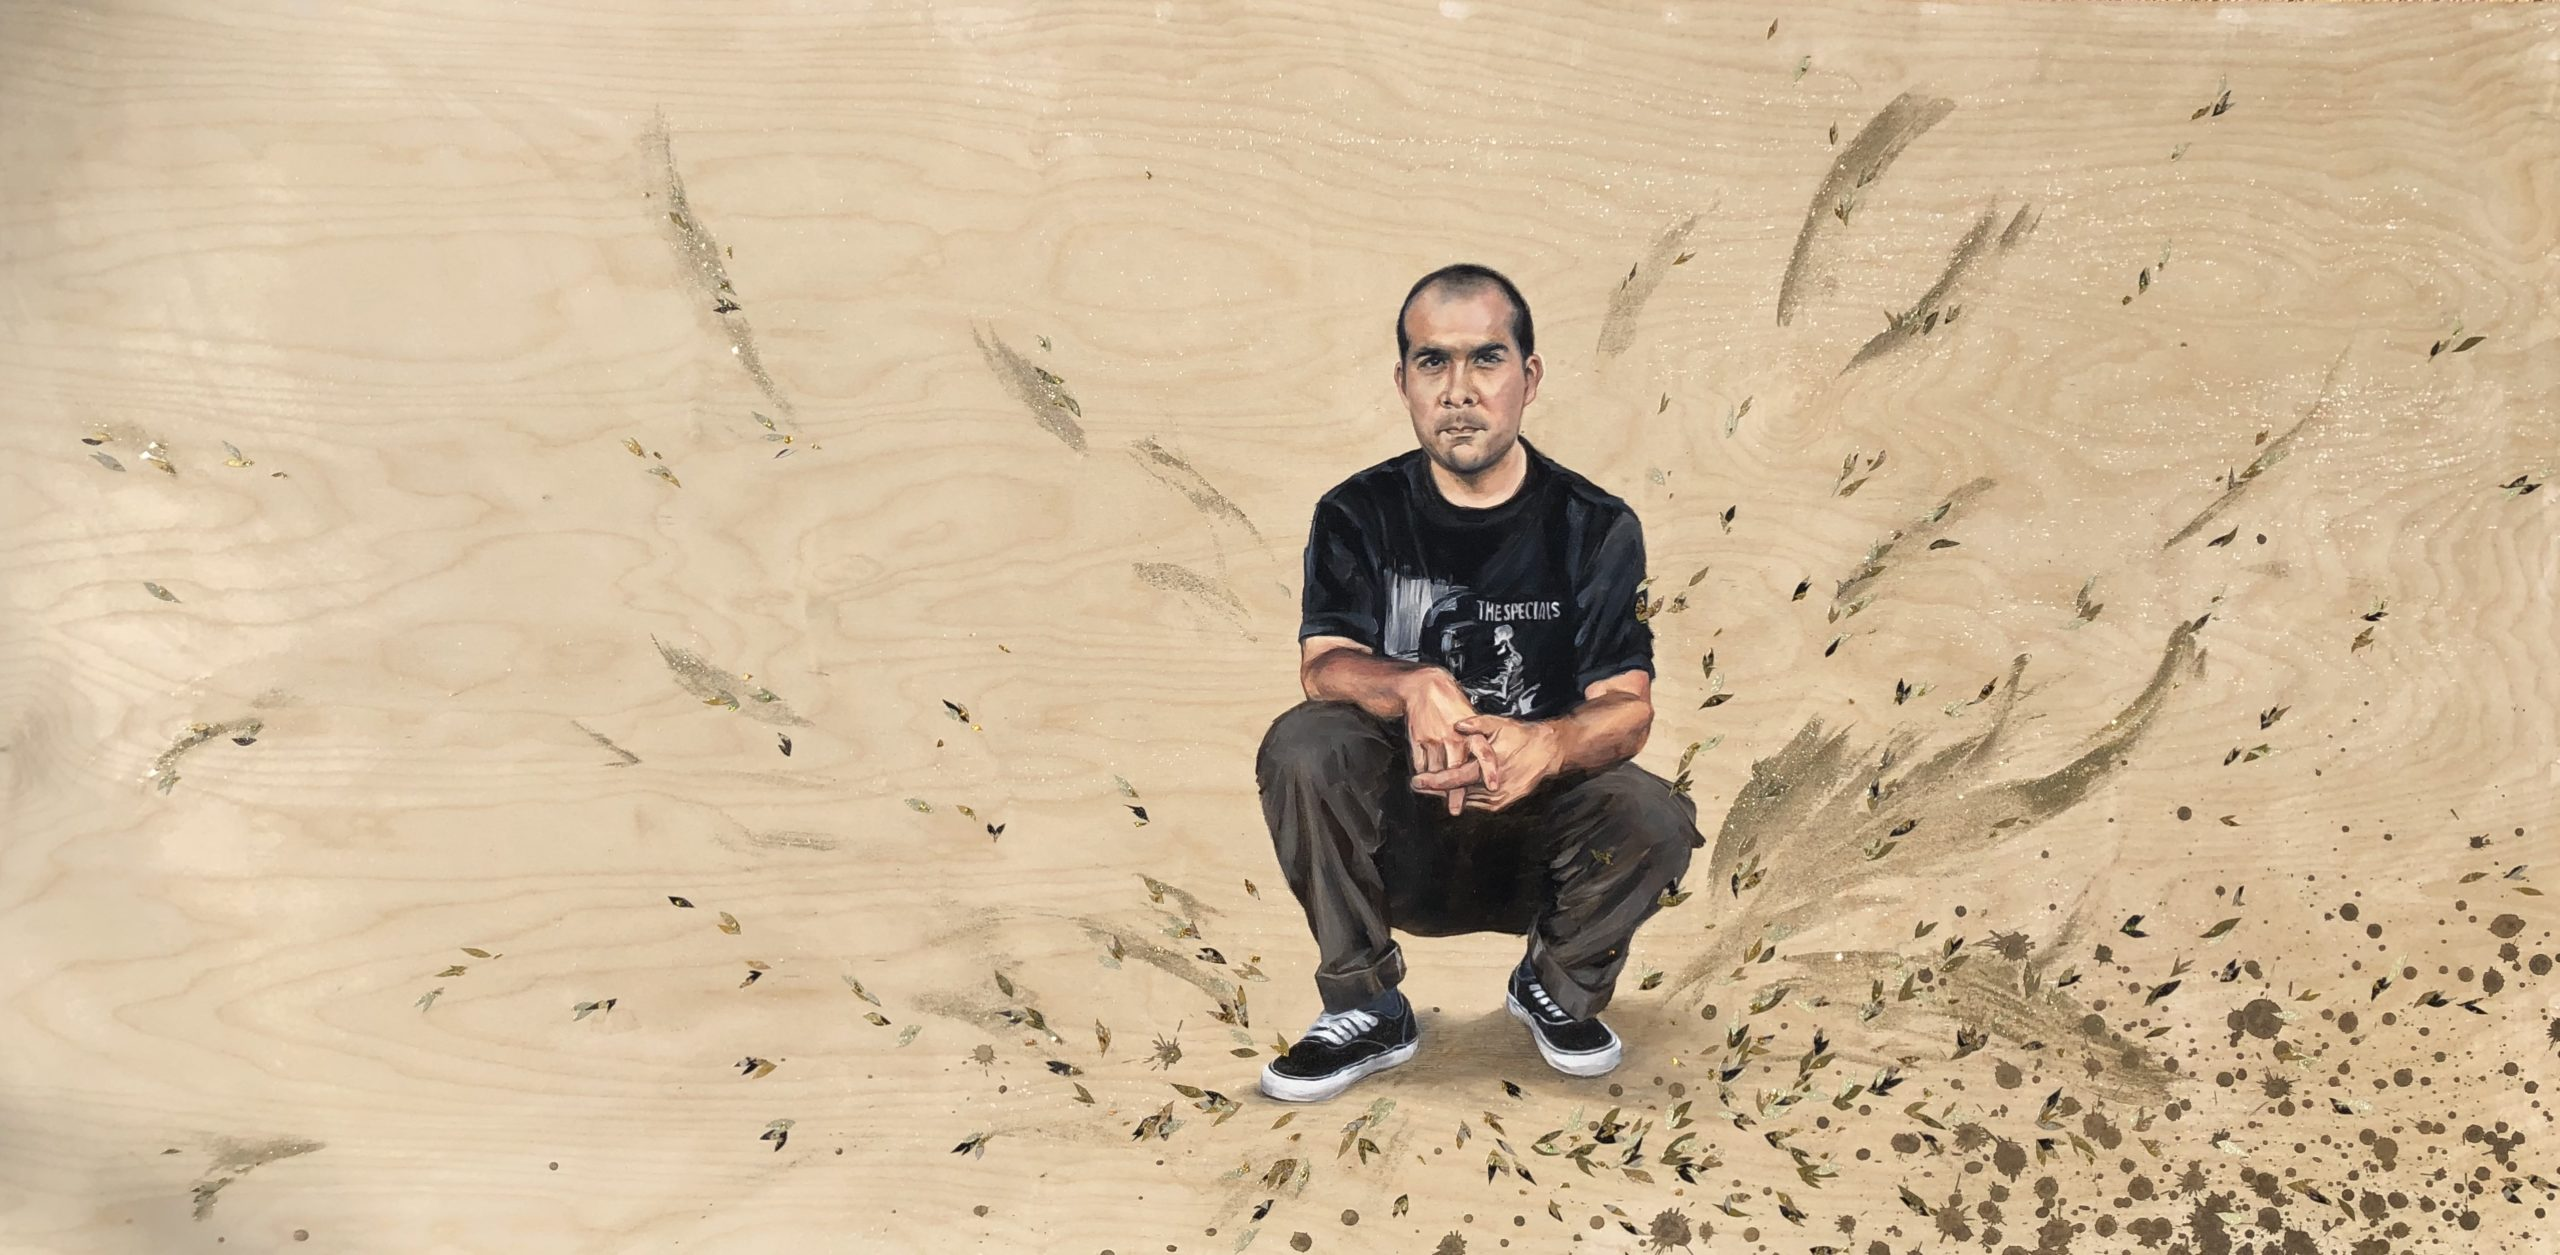 This artwork by Shizu Saldamando depicts an individual of color swatting with his hands interlocked. He is wearing black and white sneakers, dark brown pants, and black t-shirt with the words The Specials on it. There are various, painterly marks surrounding the figure. The figure and marks are rendered on a light wood panel.